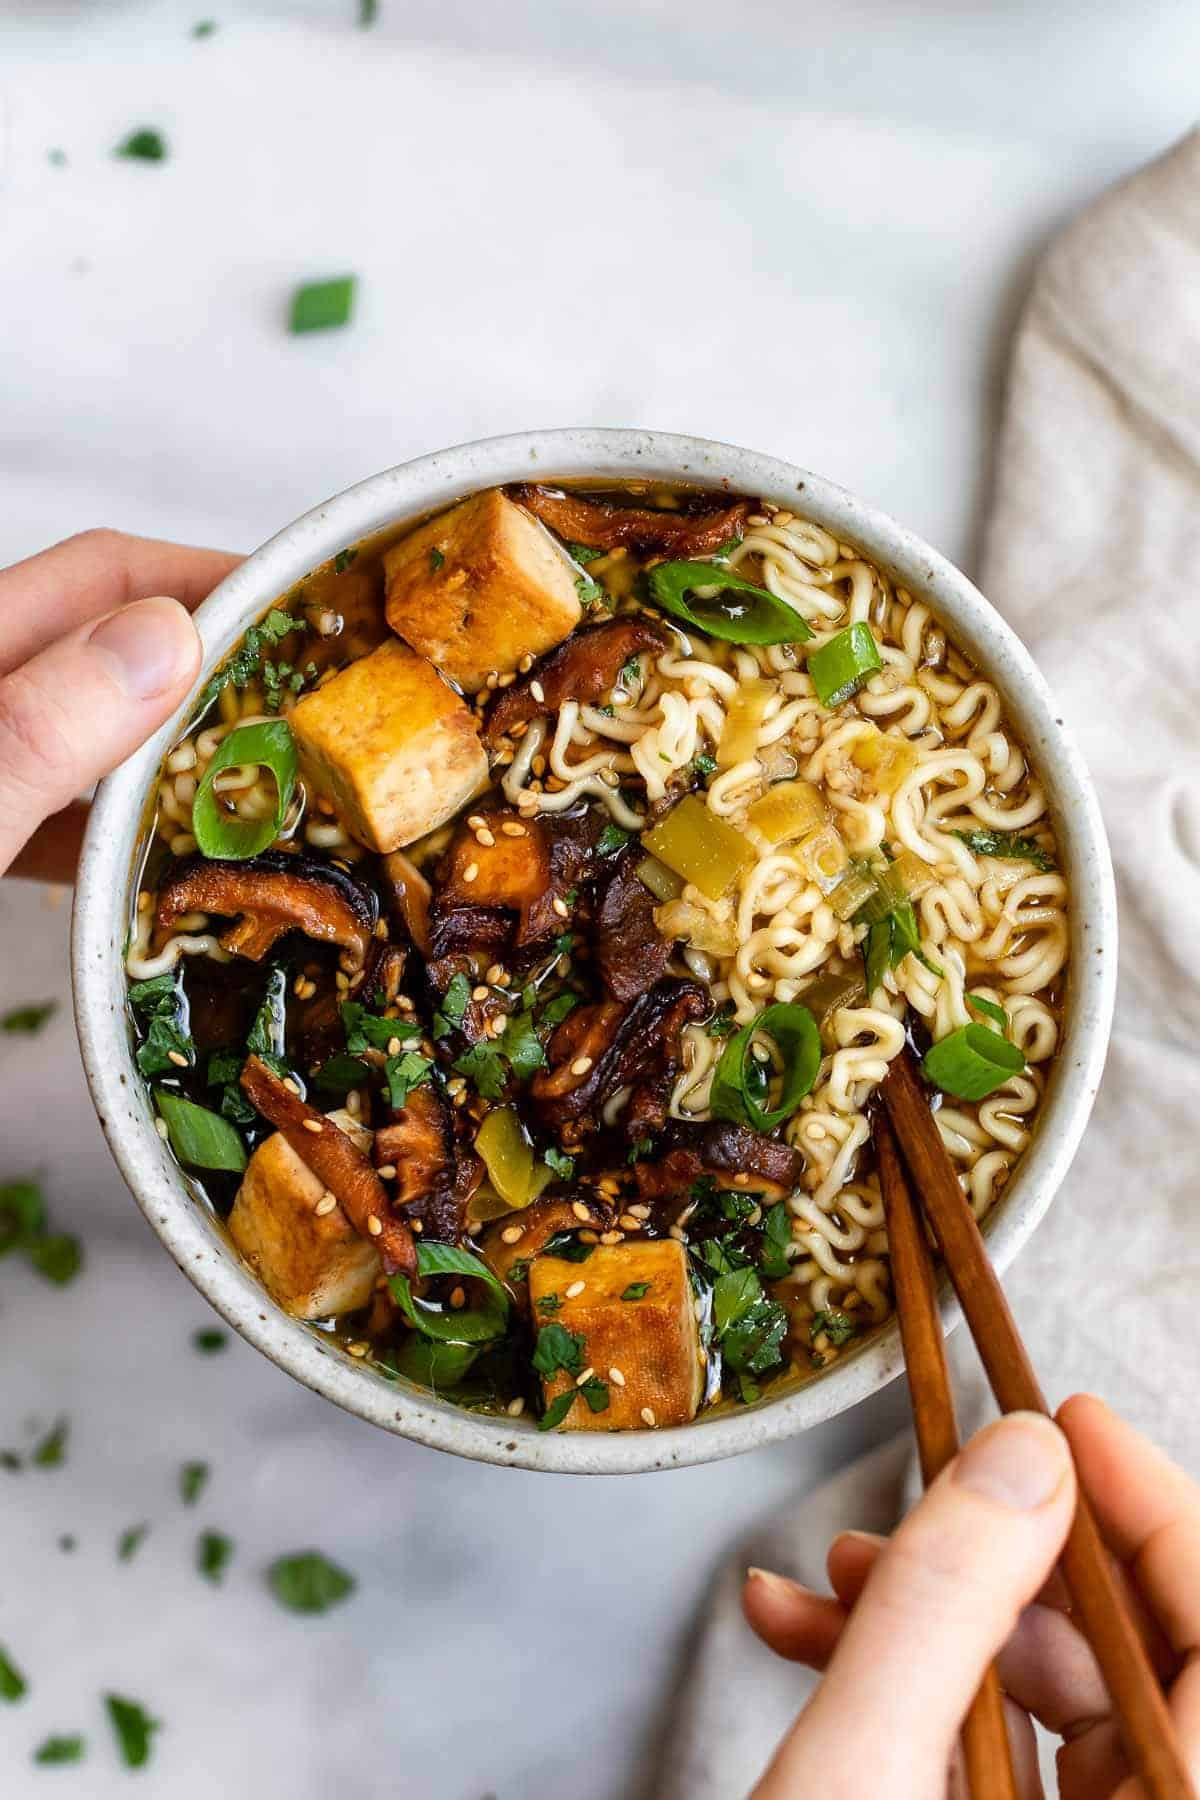 Two hands holding a bowl of vegan ramen noodles with mushrooms.